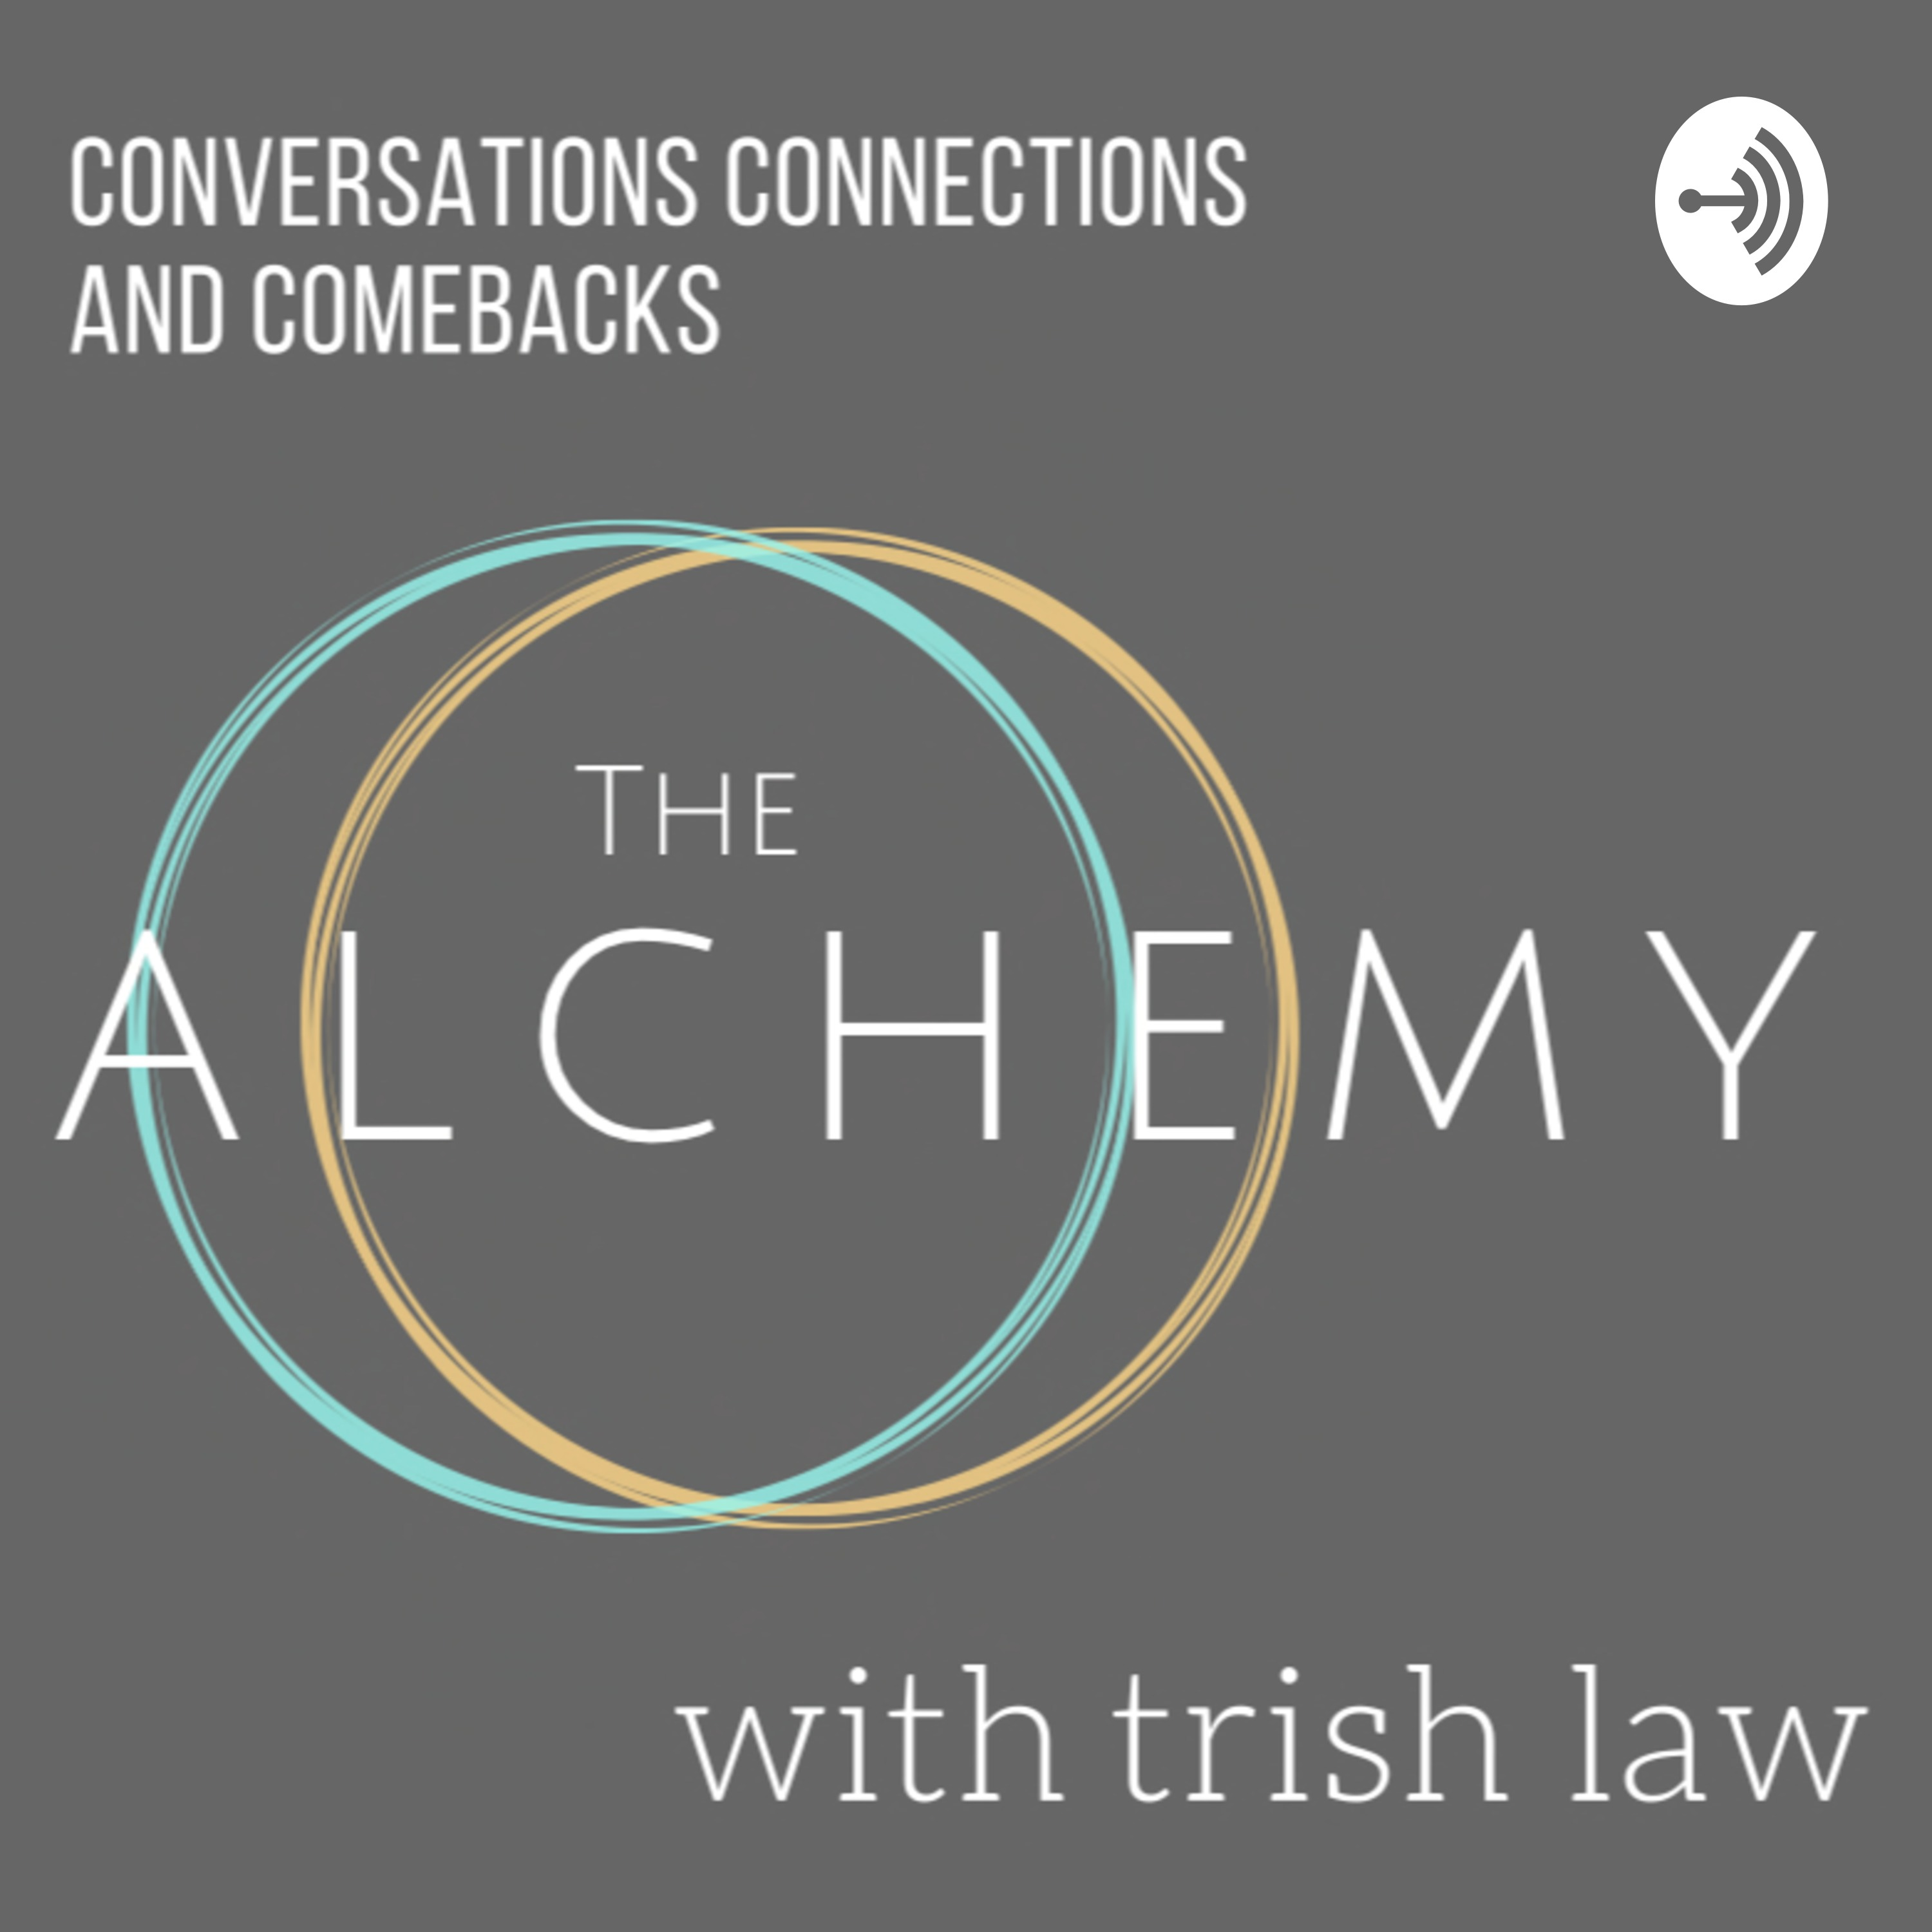 The Alchemy | Listen Free on Castbox